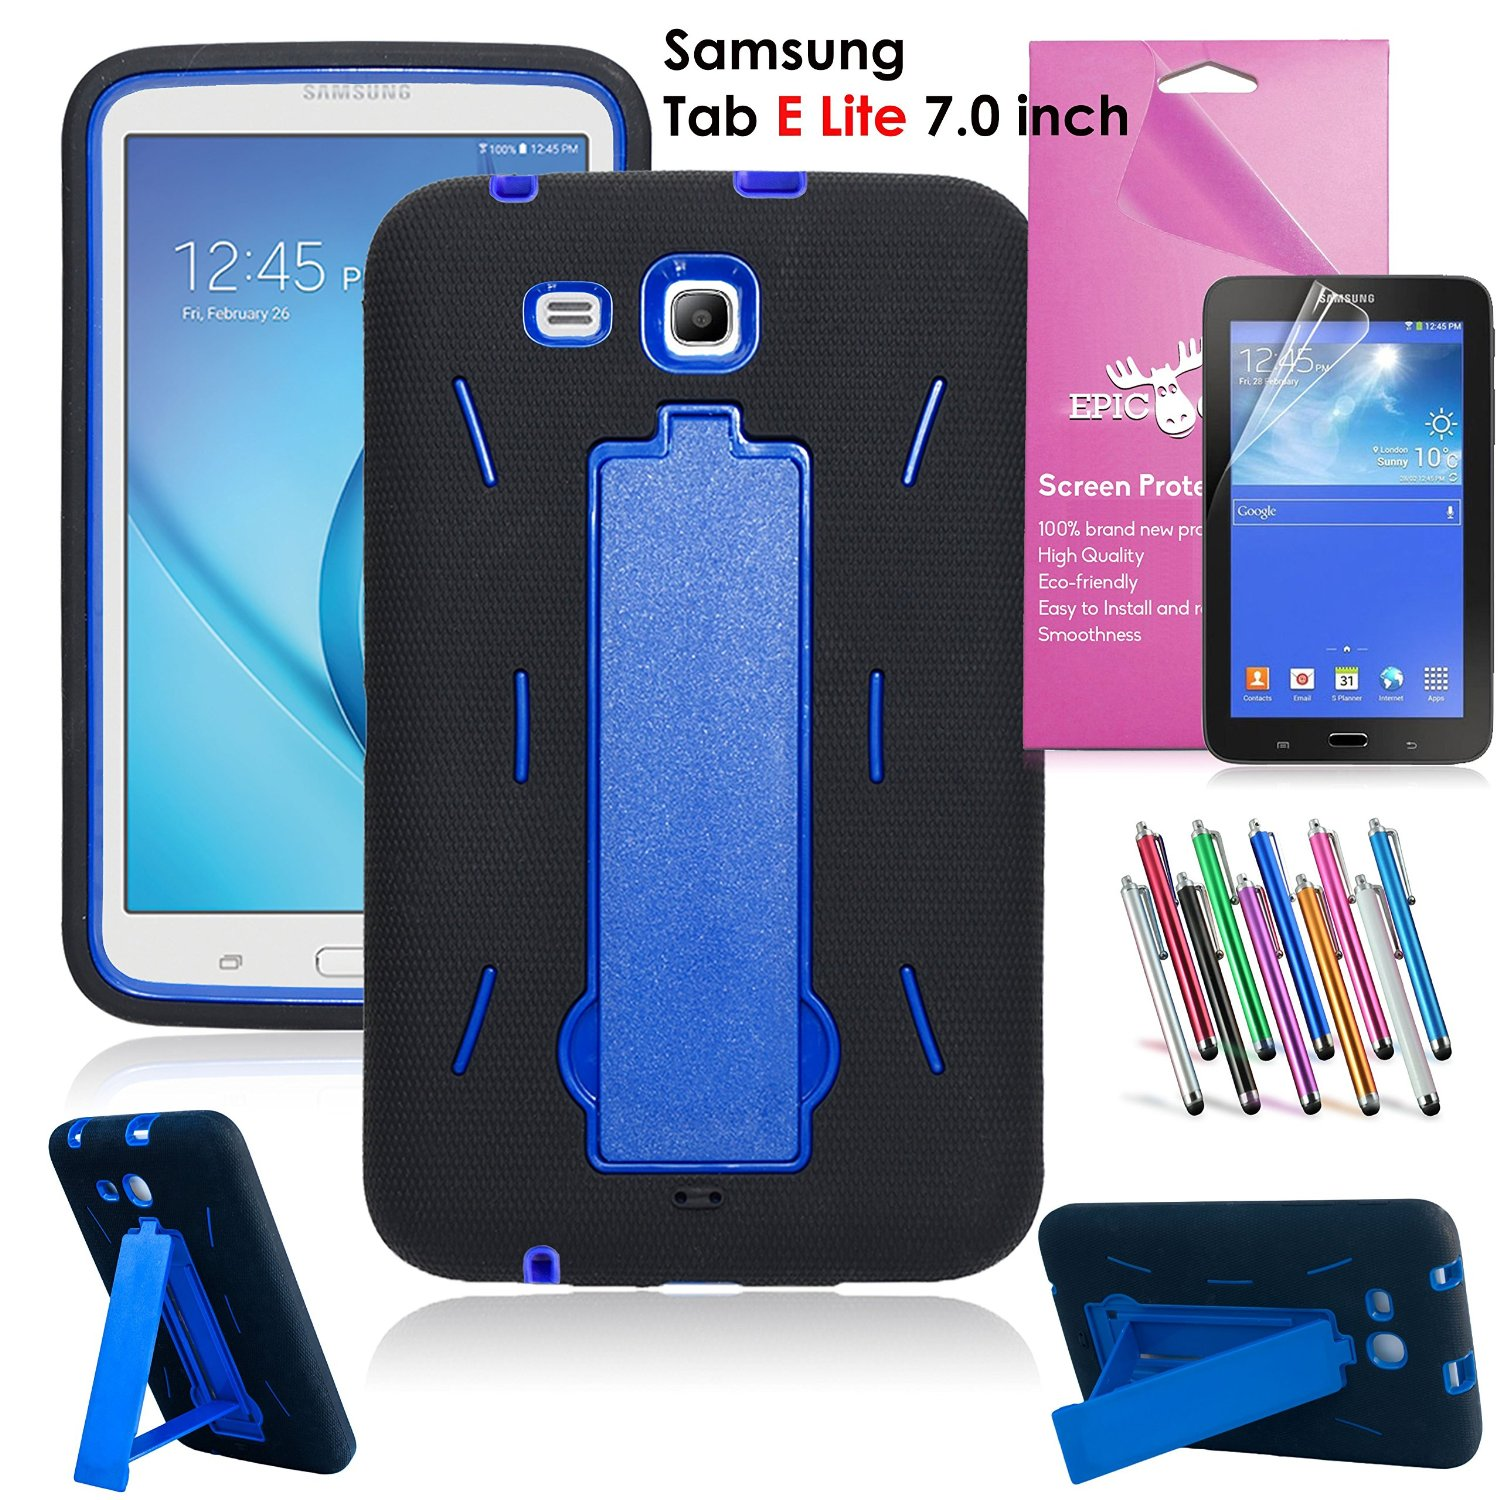 Samsung Galaxy Tab E Lite 7.0 Case, EpicGadget(TM) Heavy Duty Rugged Impact Hybrid Case with Build In Kickstand Protection Cover For Galaxy Tab E 7 T113 + Screen Protector + Pen(US Seller)(Black/Blue)